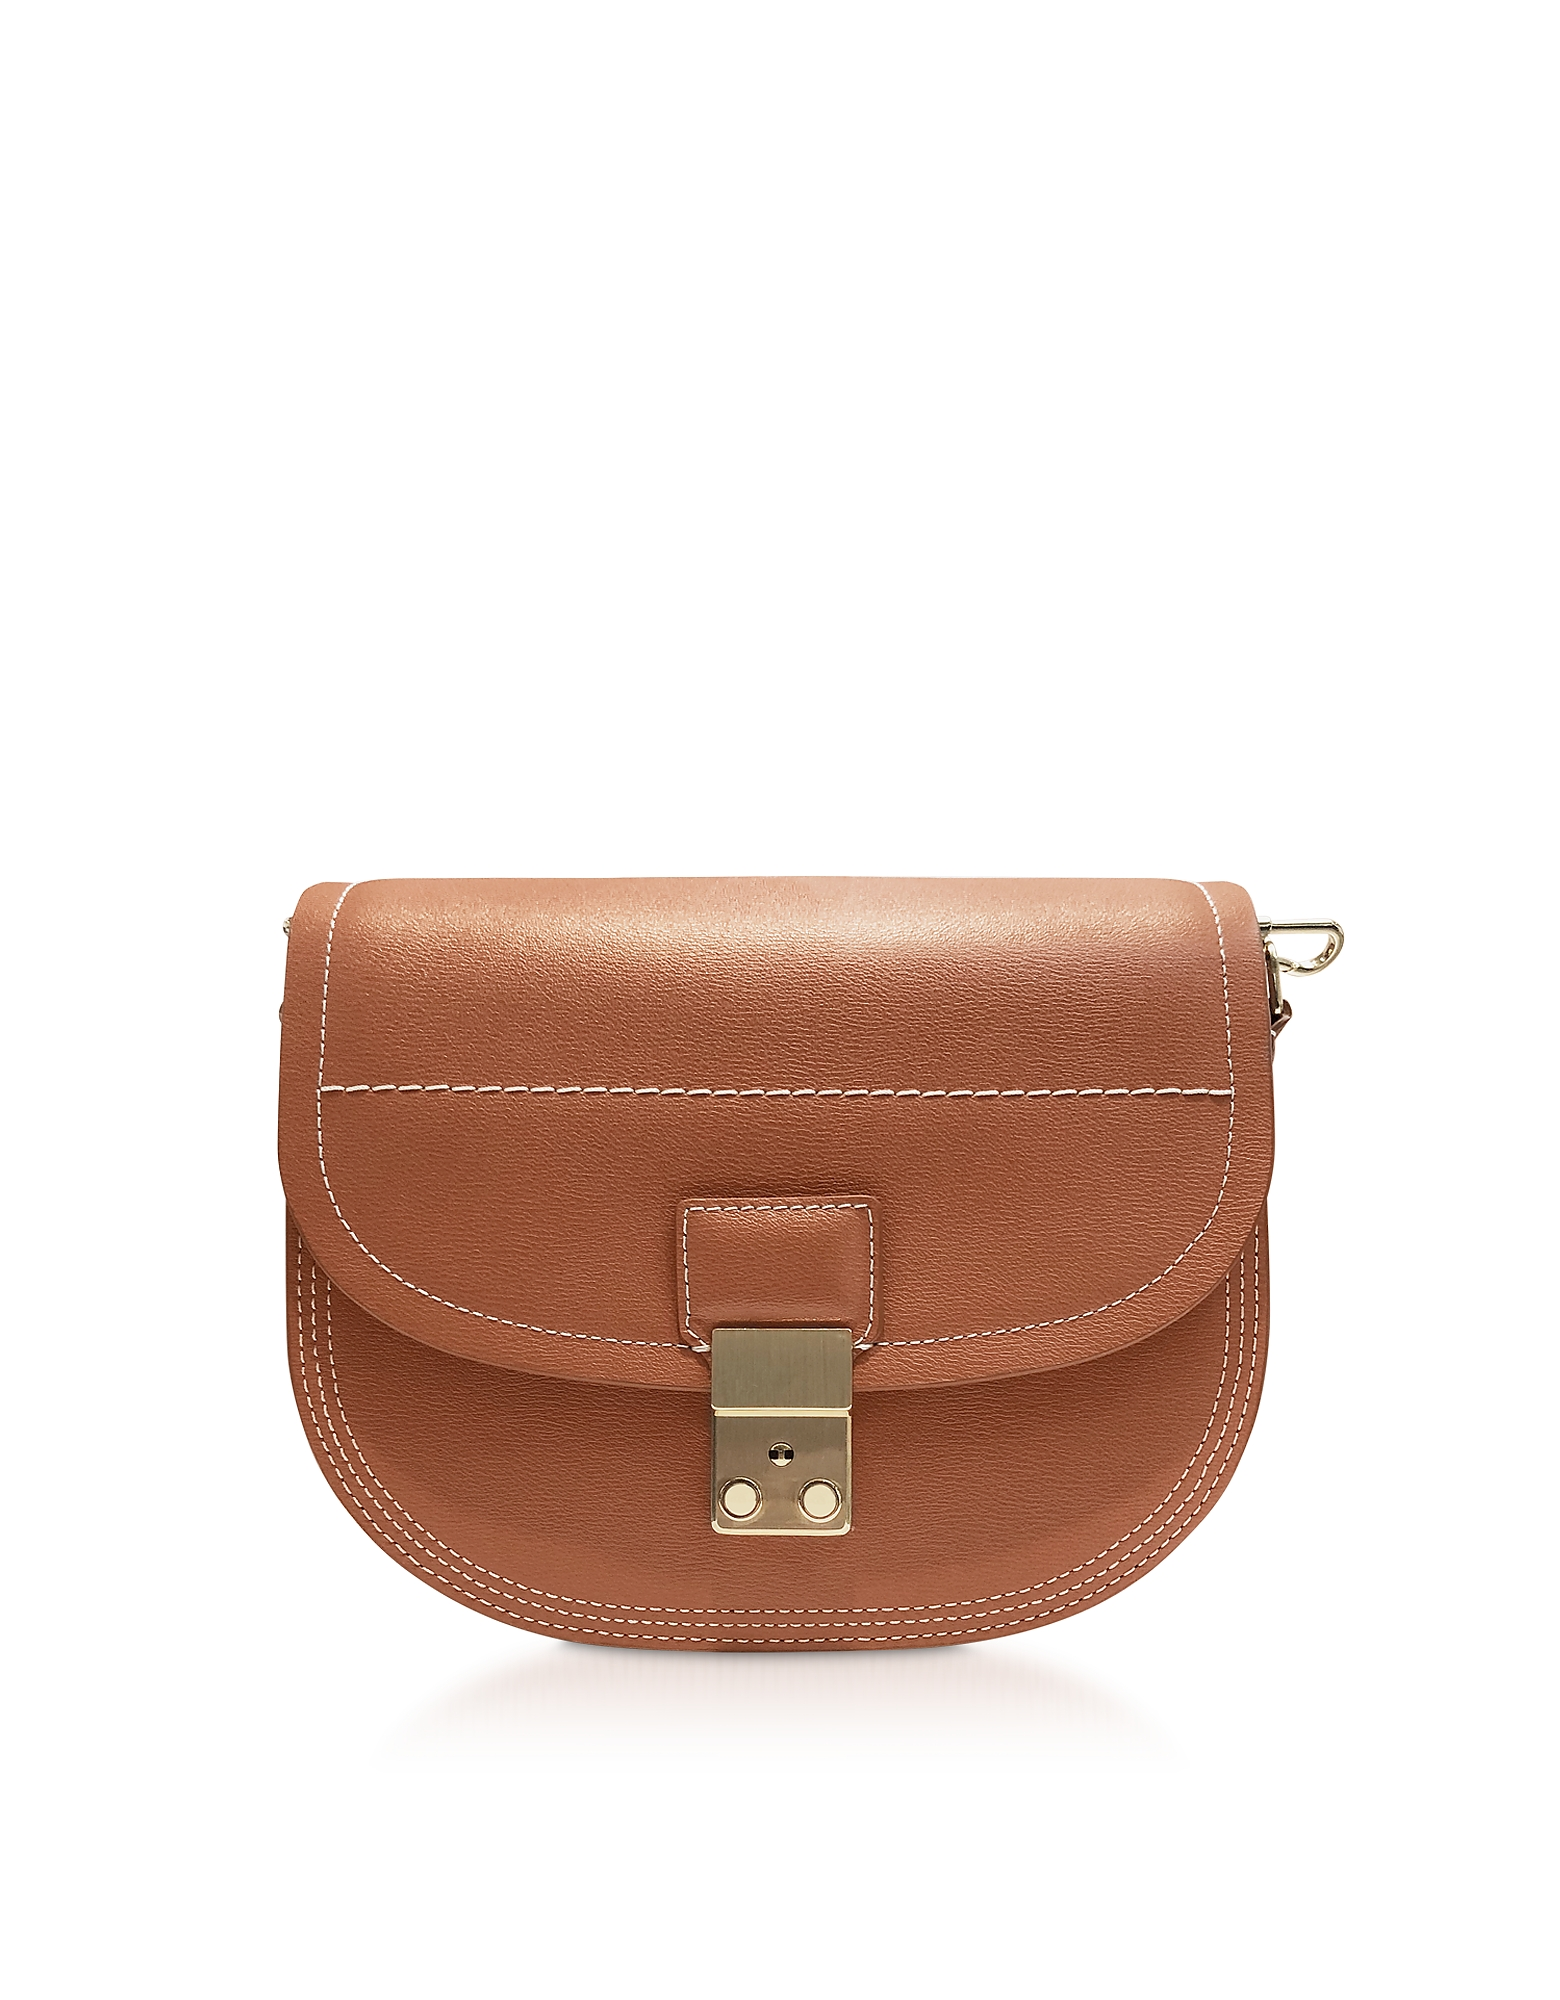 Pashli Saddle Bag